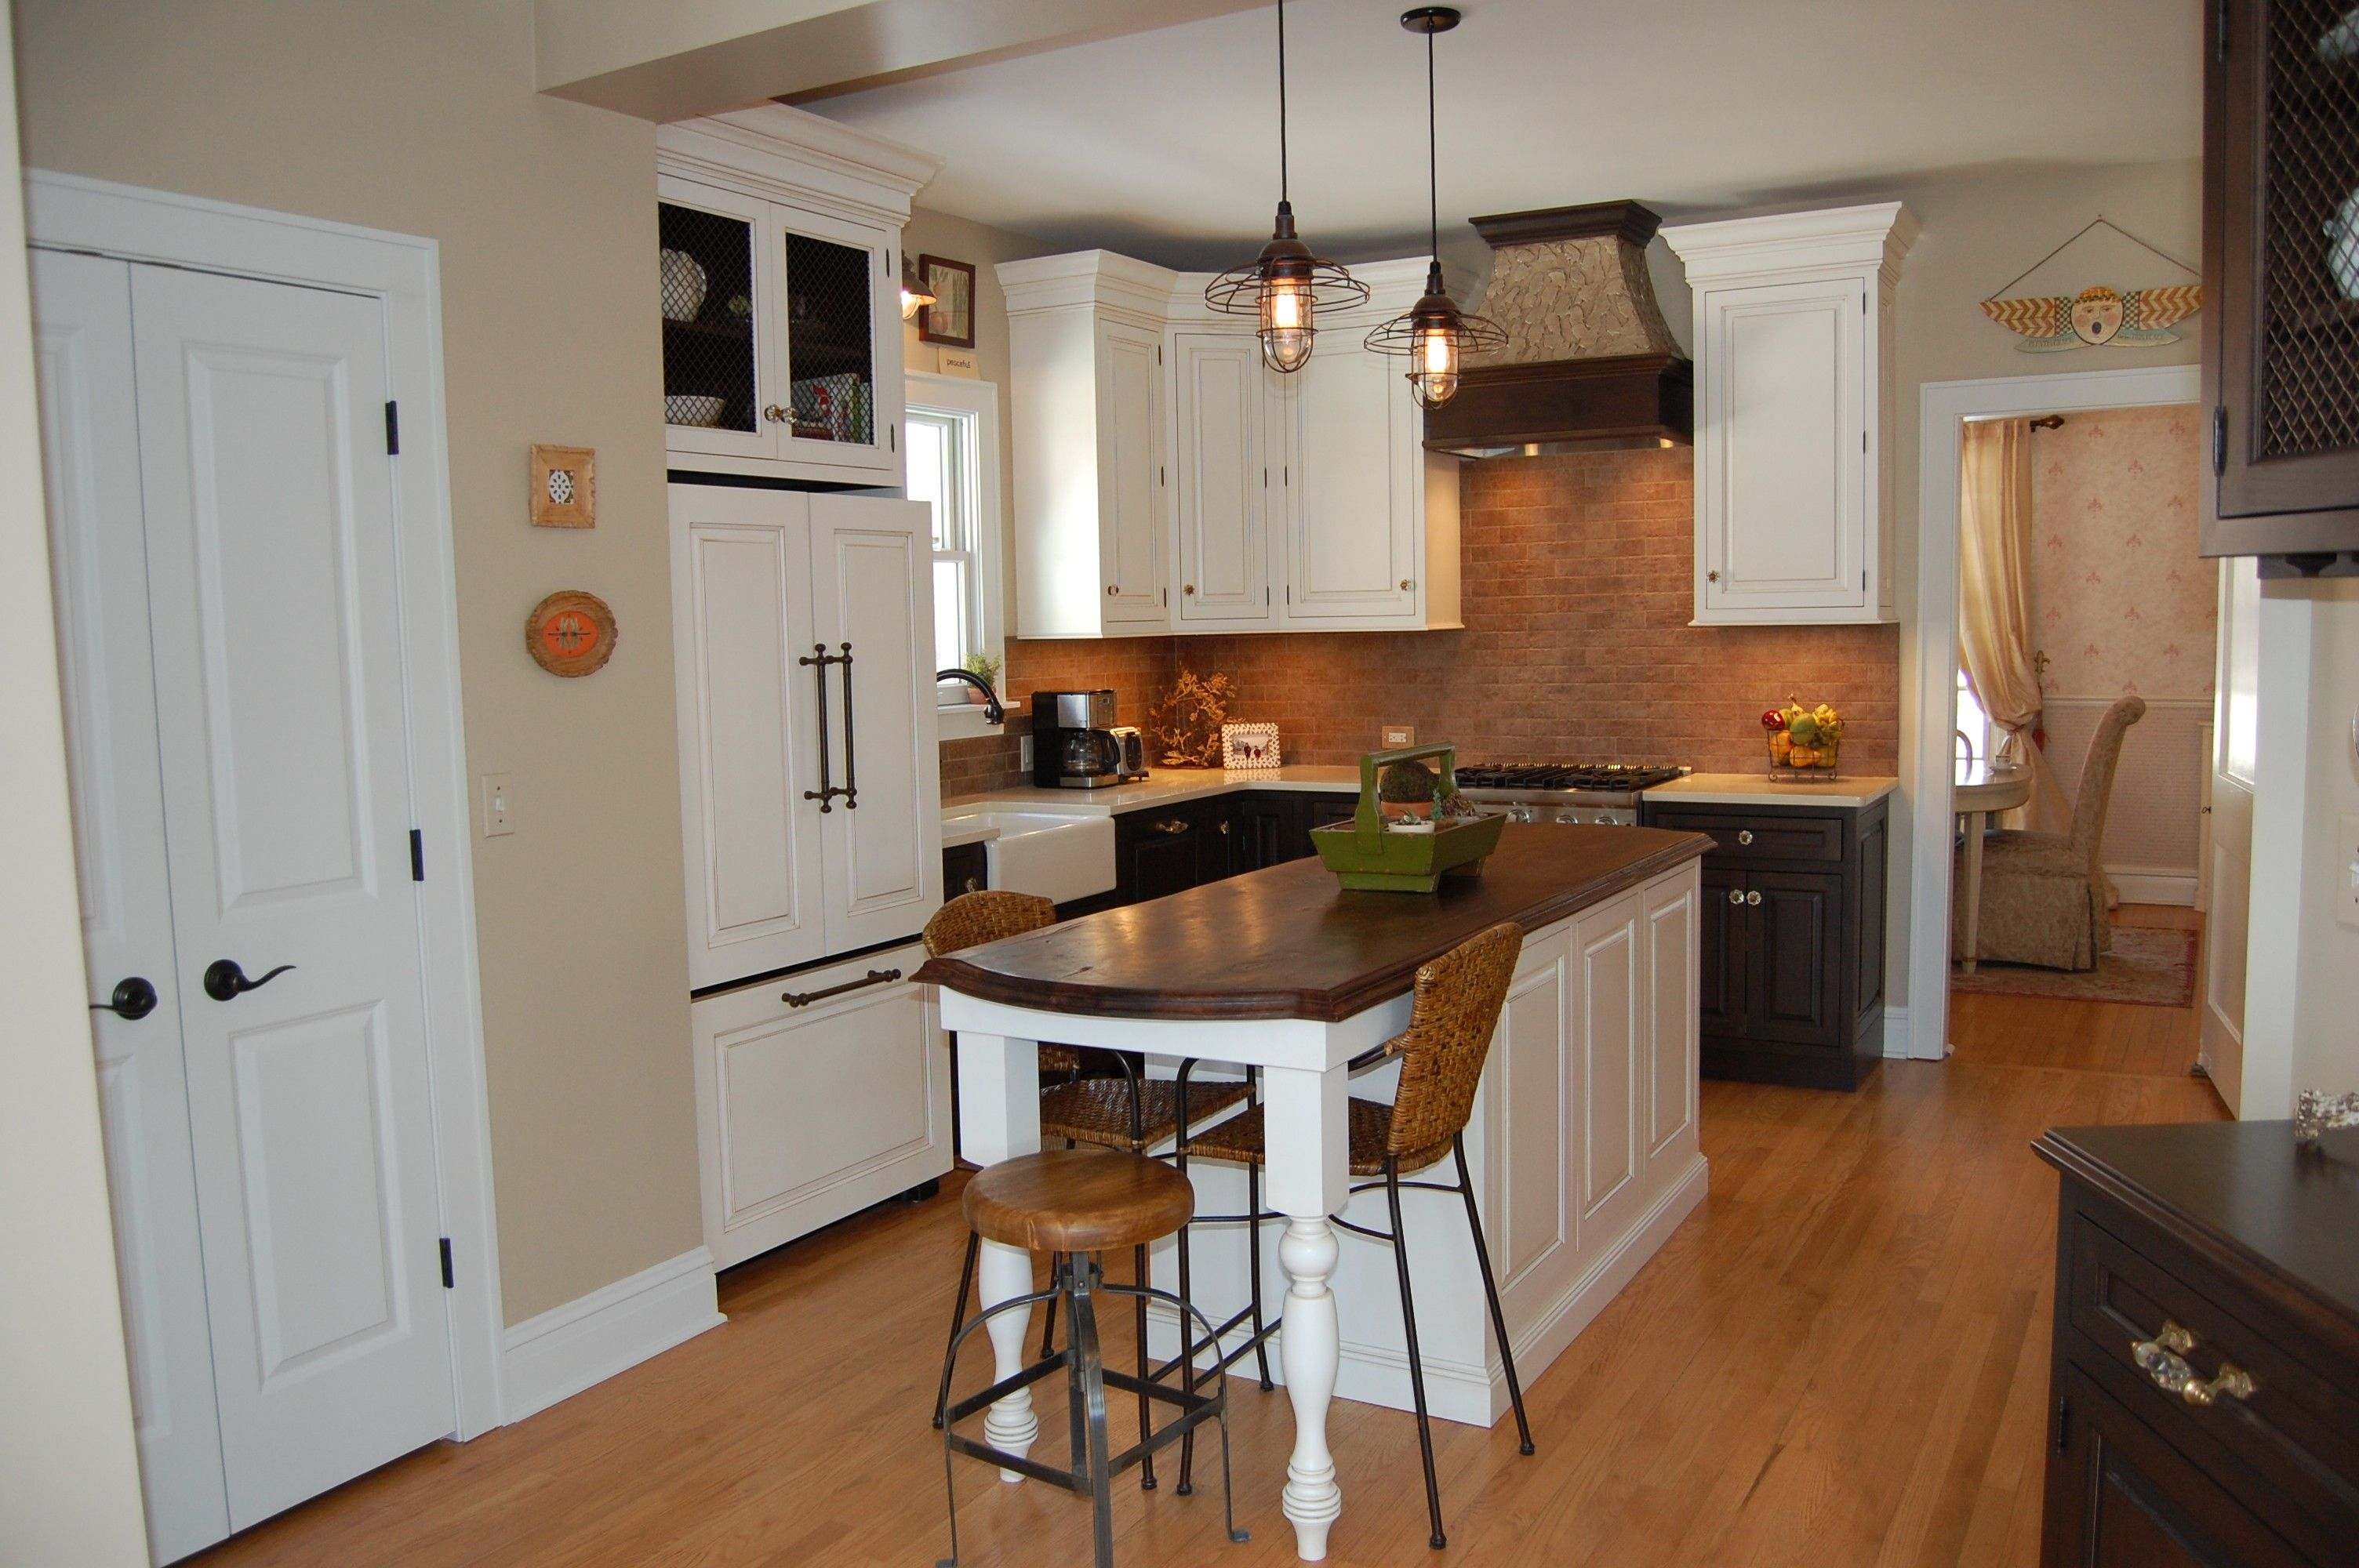 Narrow Kitchen Island With Seating Google Search Kitchen Design Small Kitchen Island With Seating Narrow Kitchen Island